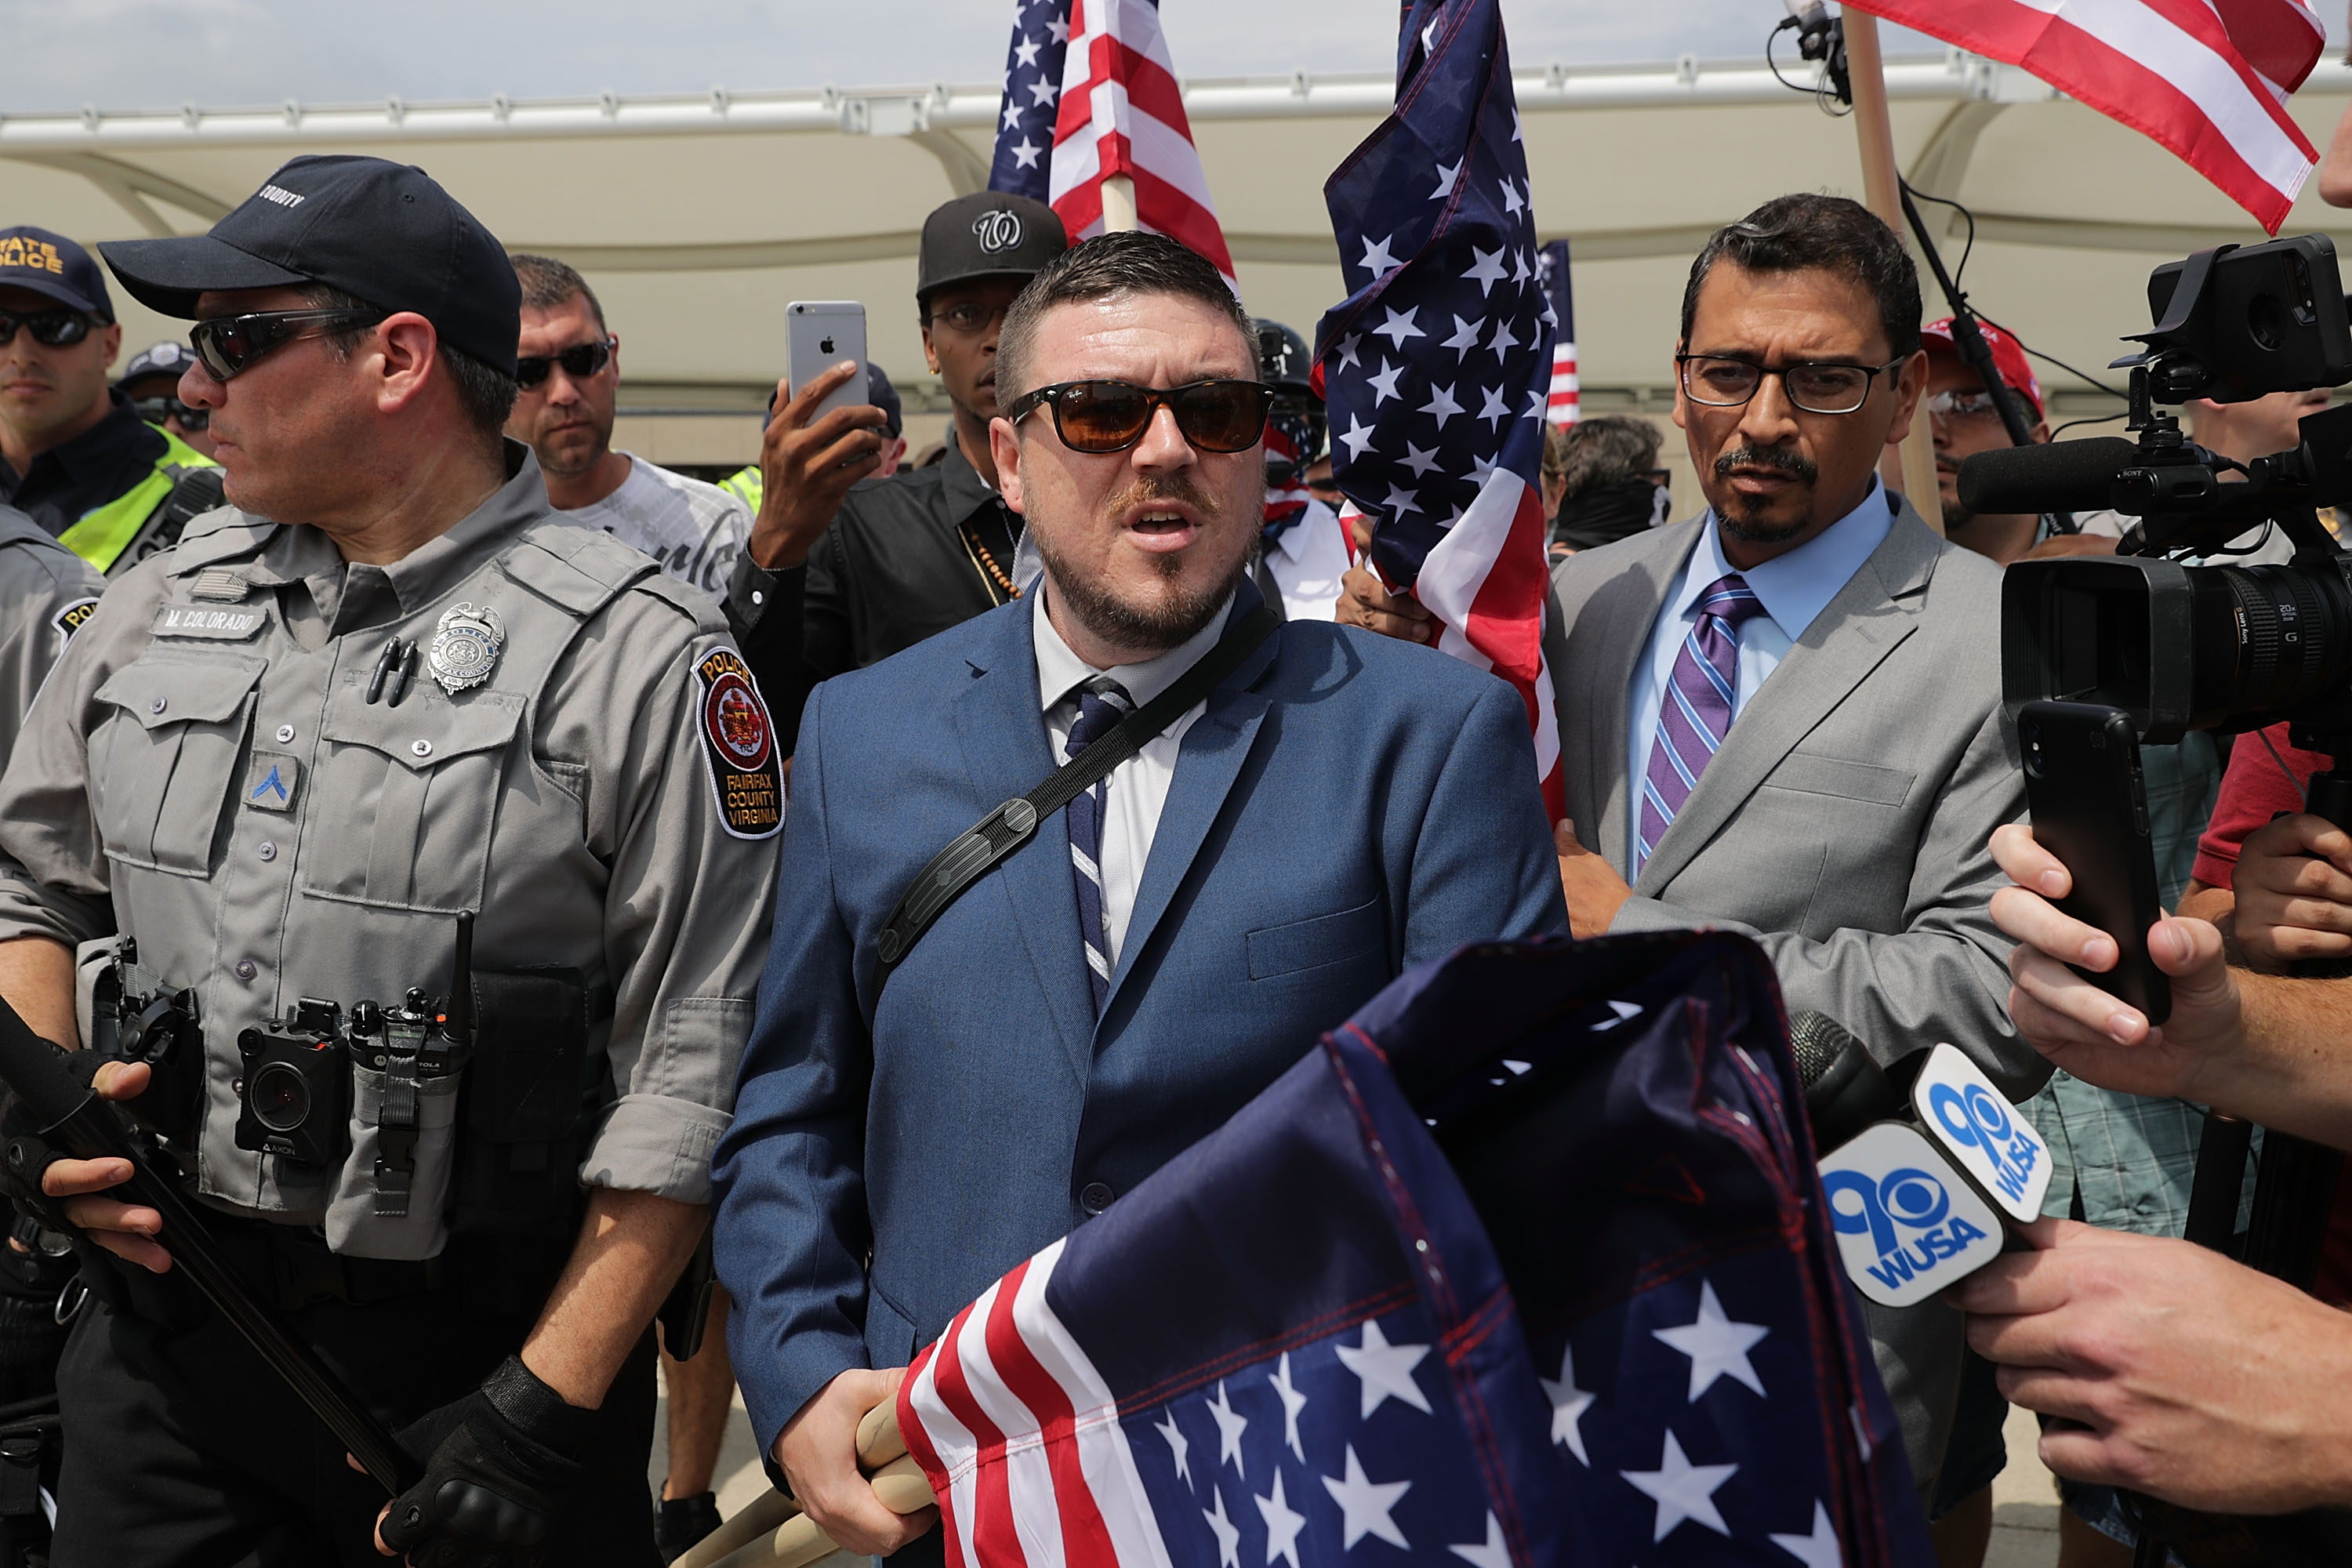 Surrounded by his supporters, reporters and Fairfax County Police, Jason Kessler (C) walks toward the Vienna/Fairfax GMU Metro Station to travel by train to the White House for his white supremacist 'Unite the Right' rally August 12, 2018 in Vienna, Virginia. Thousands of protesters are expected to demonstrate against the 'white civil rights' rally in Washington, which was planned by the organizer of last year's deadly rally in Charlottesville, Virginia.